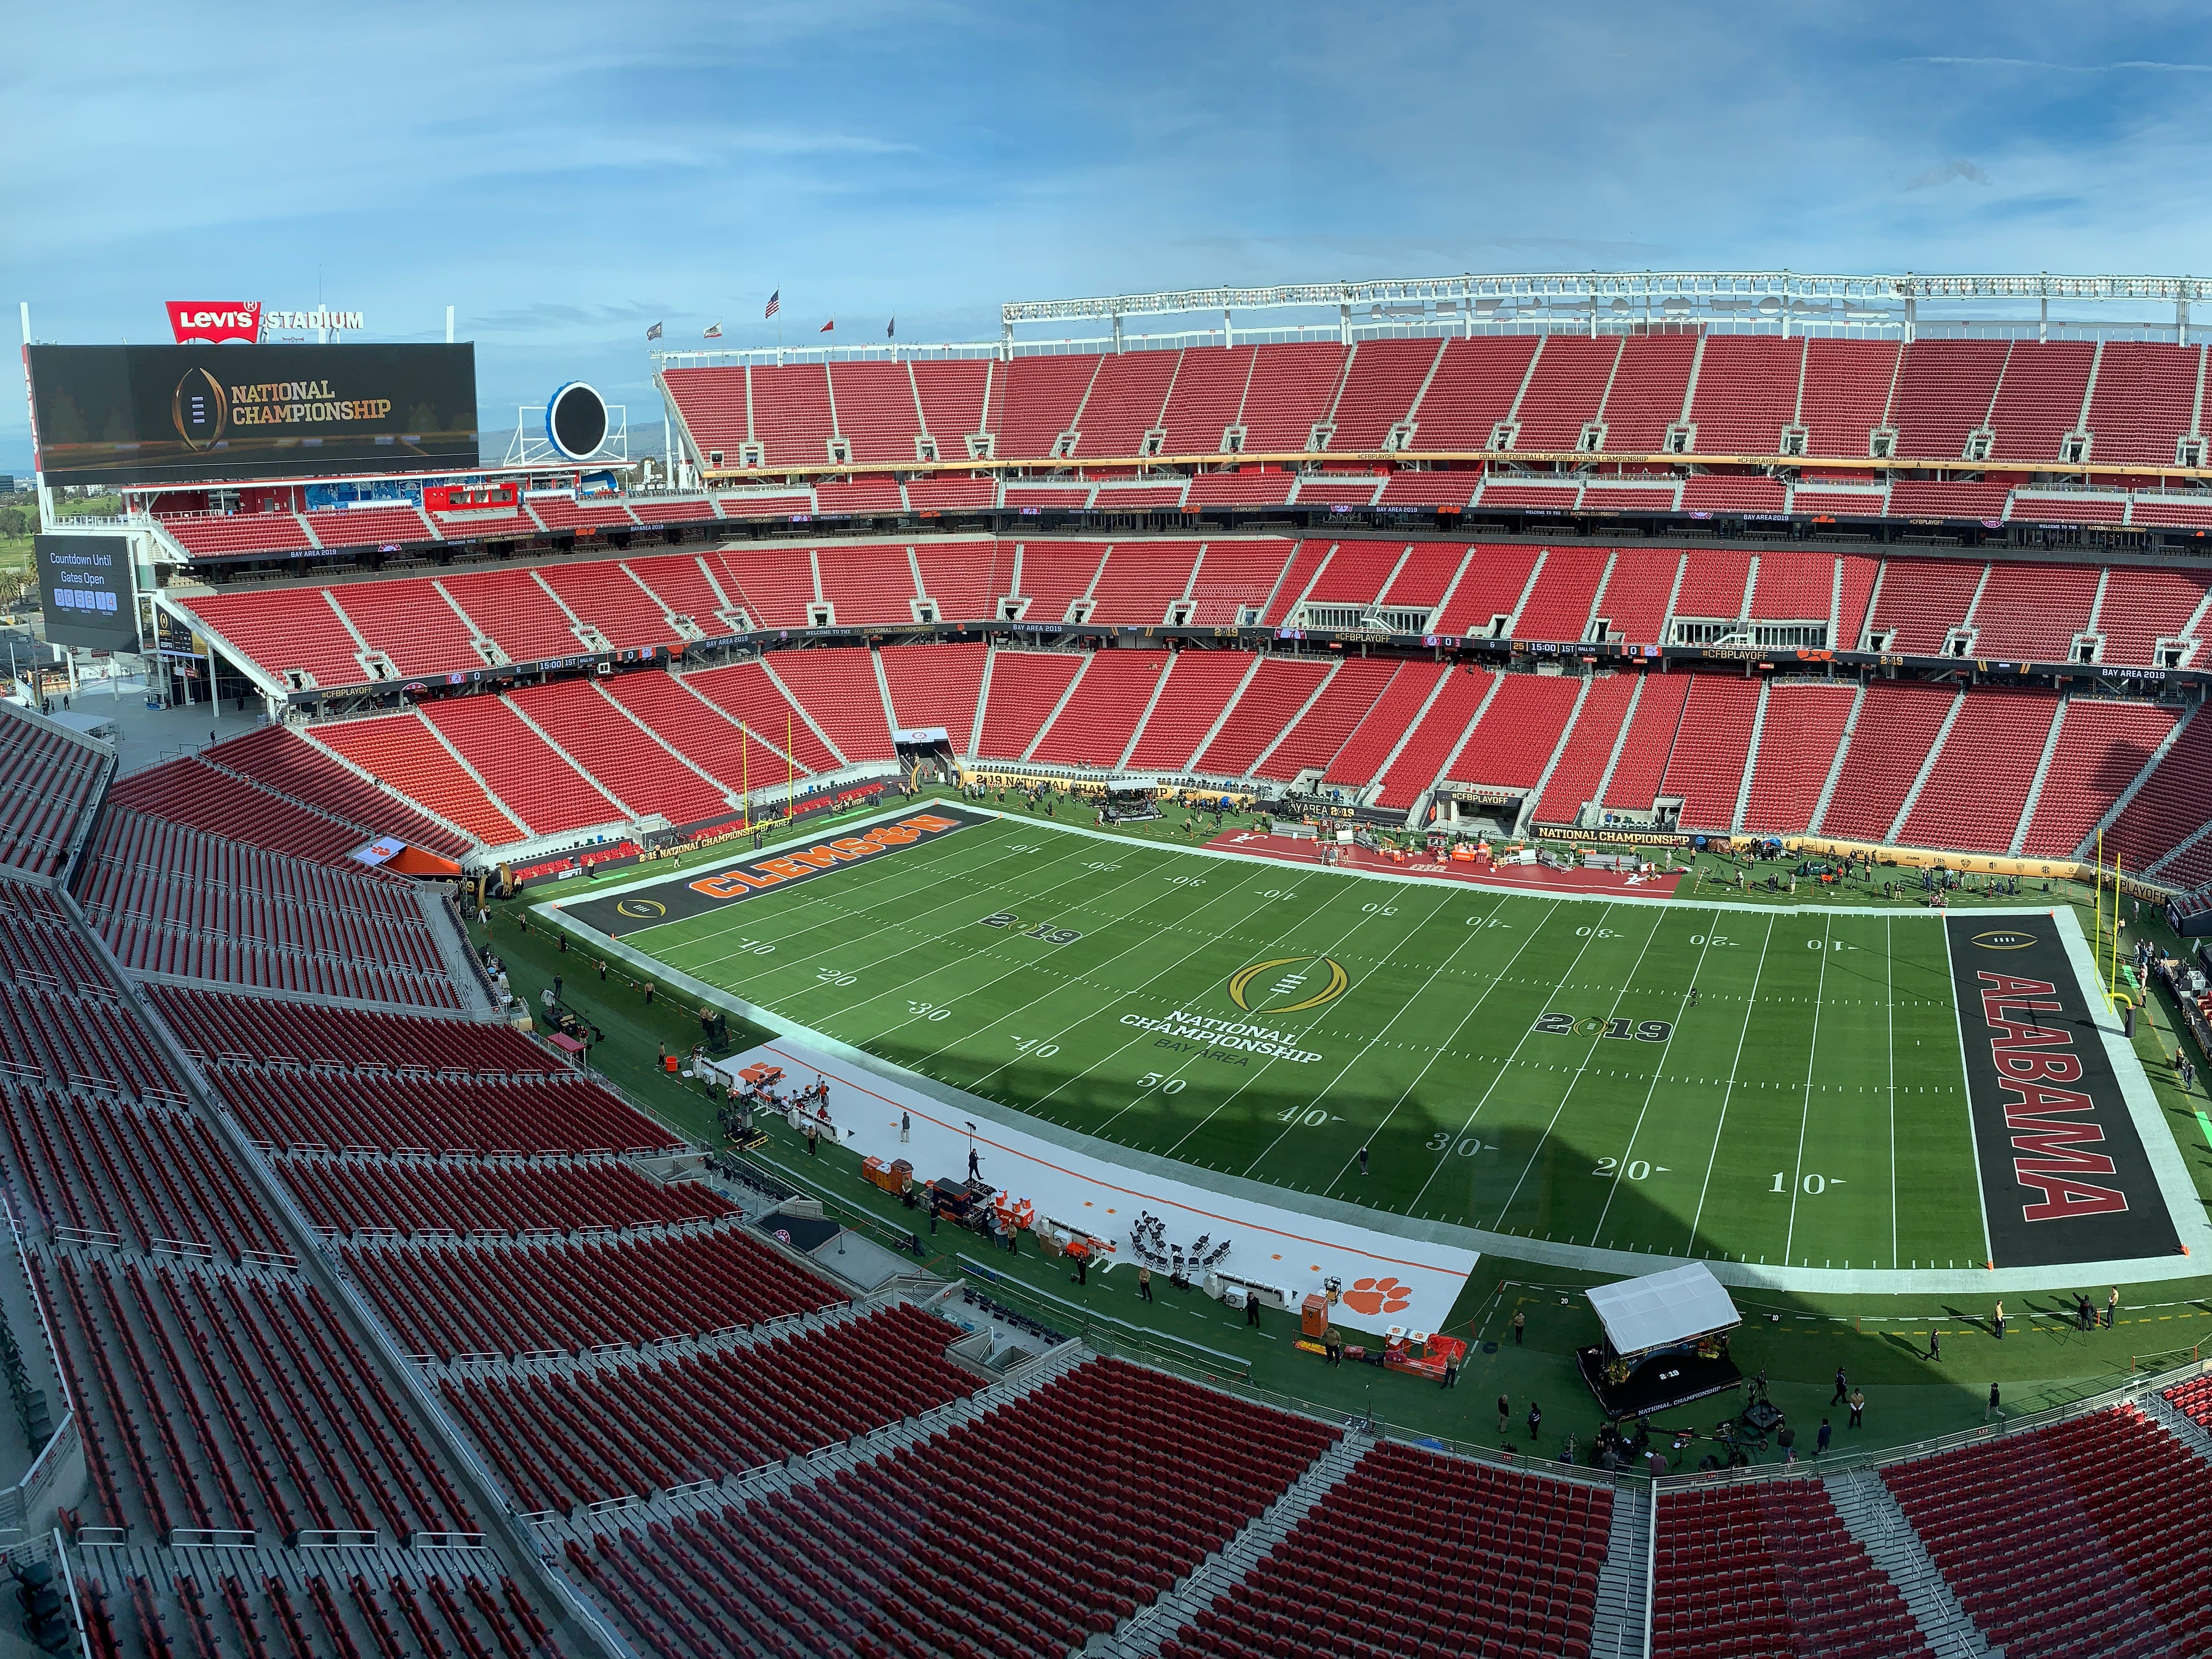 A general view of the stadium before the 2019 College Football Playoff Championship game between the Alabama Crimson Tide and Clemson Tigers at Levi's Stadium.